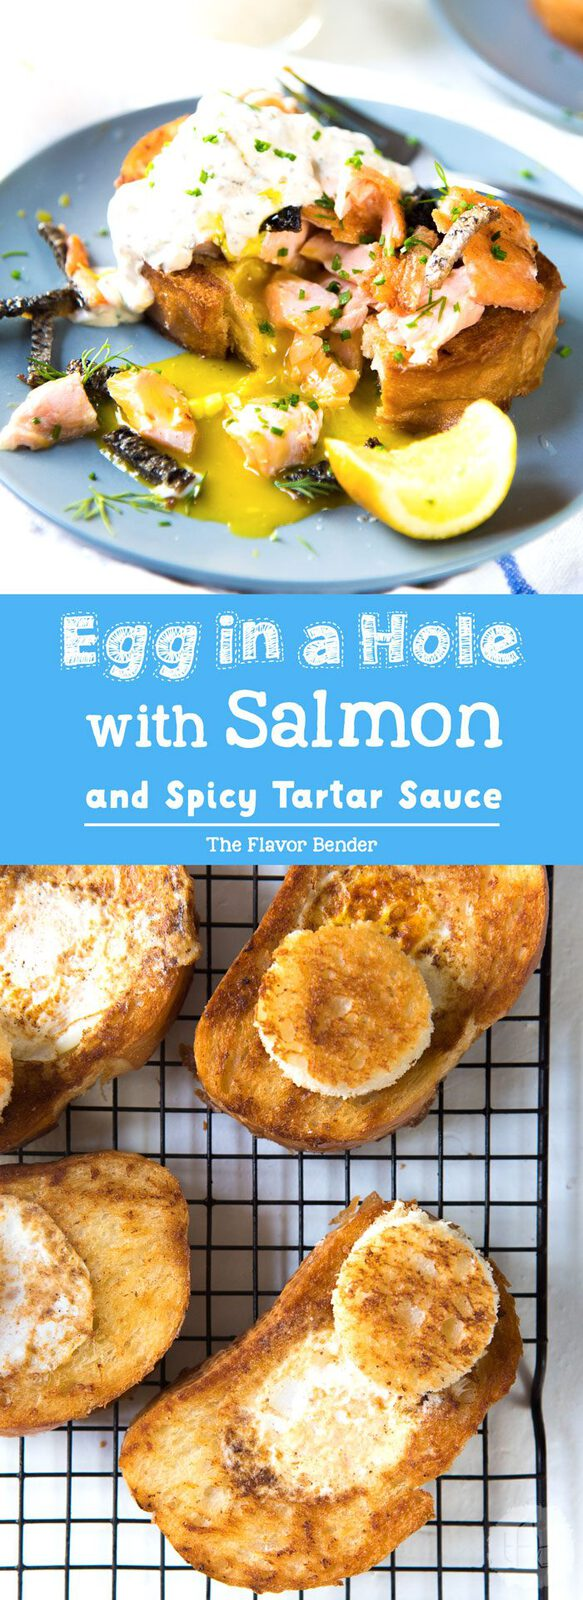 Egg in a hole with Salmon - Warm, buttery toast with a rich runny egg in a hole, and topped with salmon and crispy skin and spicy tartar sauce. #Breakfastrecipe #Brunchrecipes #EggInAHole #LeftoverRecipes #SeafoodRecipes